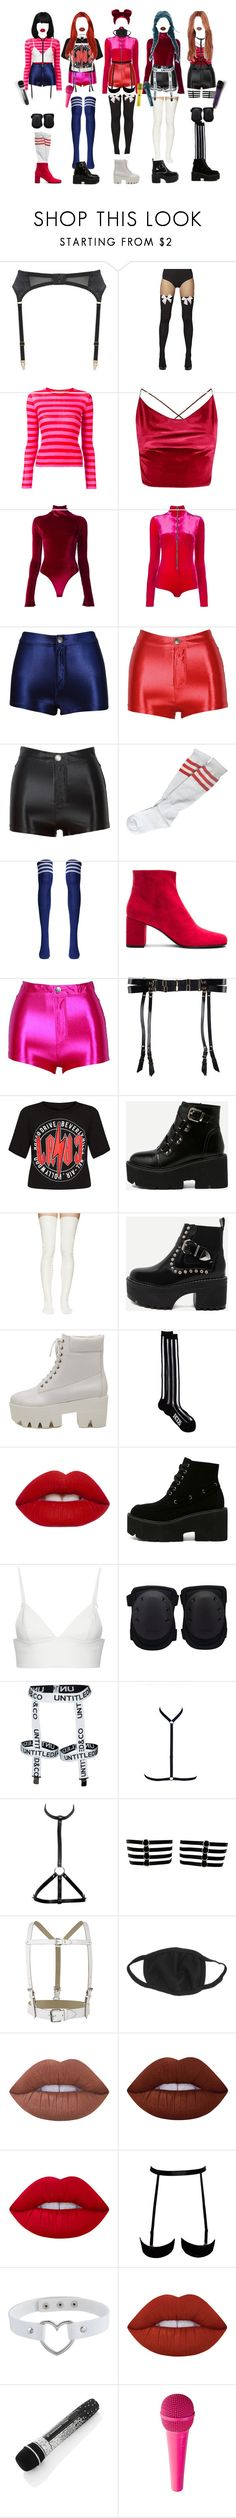 """""""[ live ] G-3 _ MY LOVE"""" by xxeucliffexx ❤ liked on Polyvore featuring Edge o' Beyond, Ermanno Scervino, Boohoo, Alix, Emiliano Rinaldi, Yves Saint Laurent, Bordelle, Sacai Luck, WithChic and KTZ"""